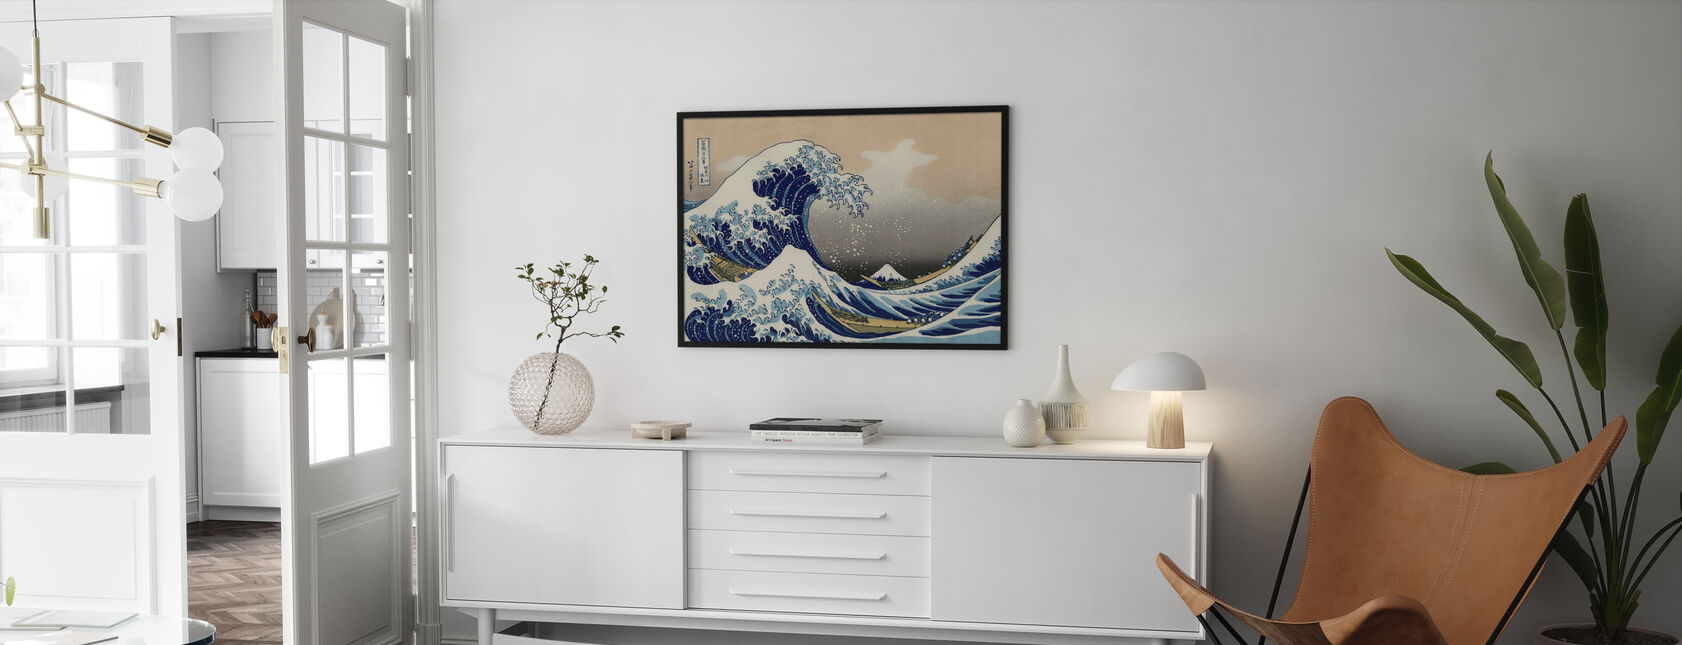 Great Wave, Katsushika Hokusai - Framed print - Living Room